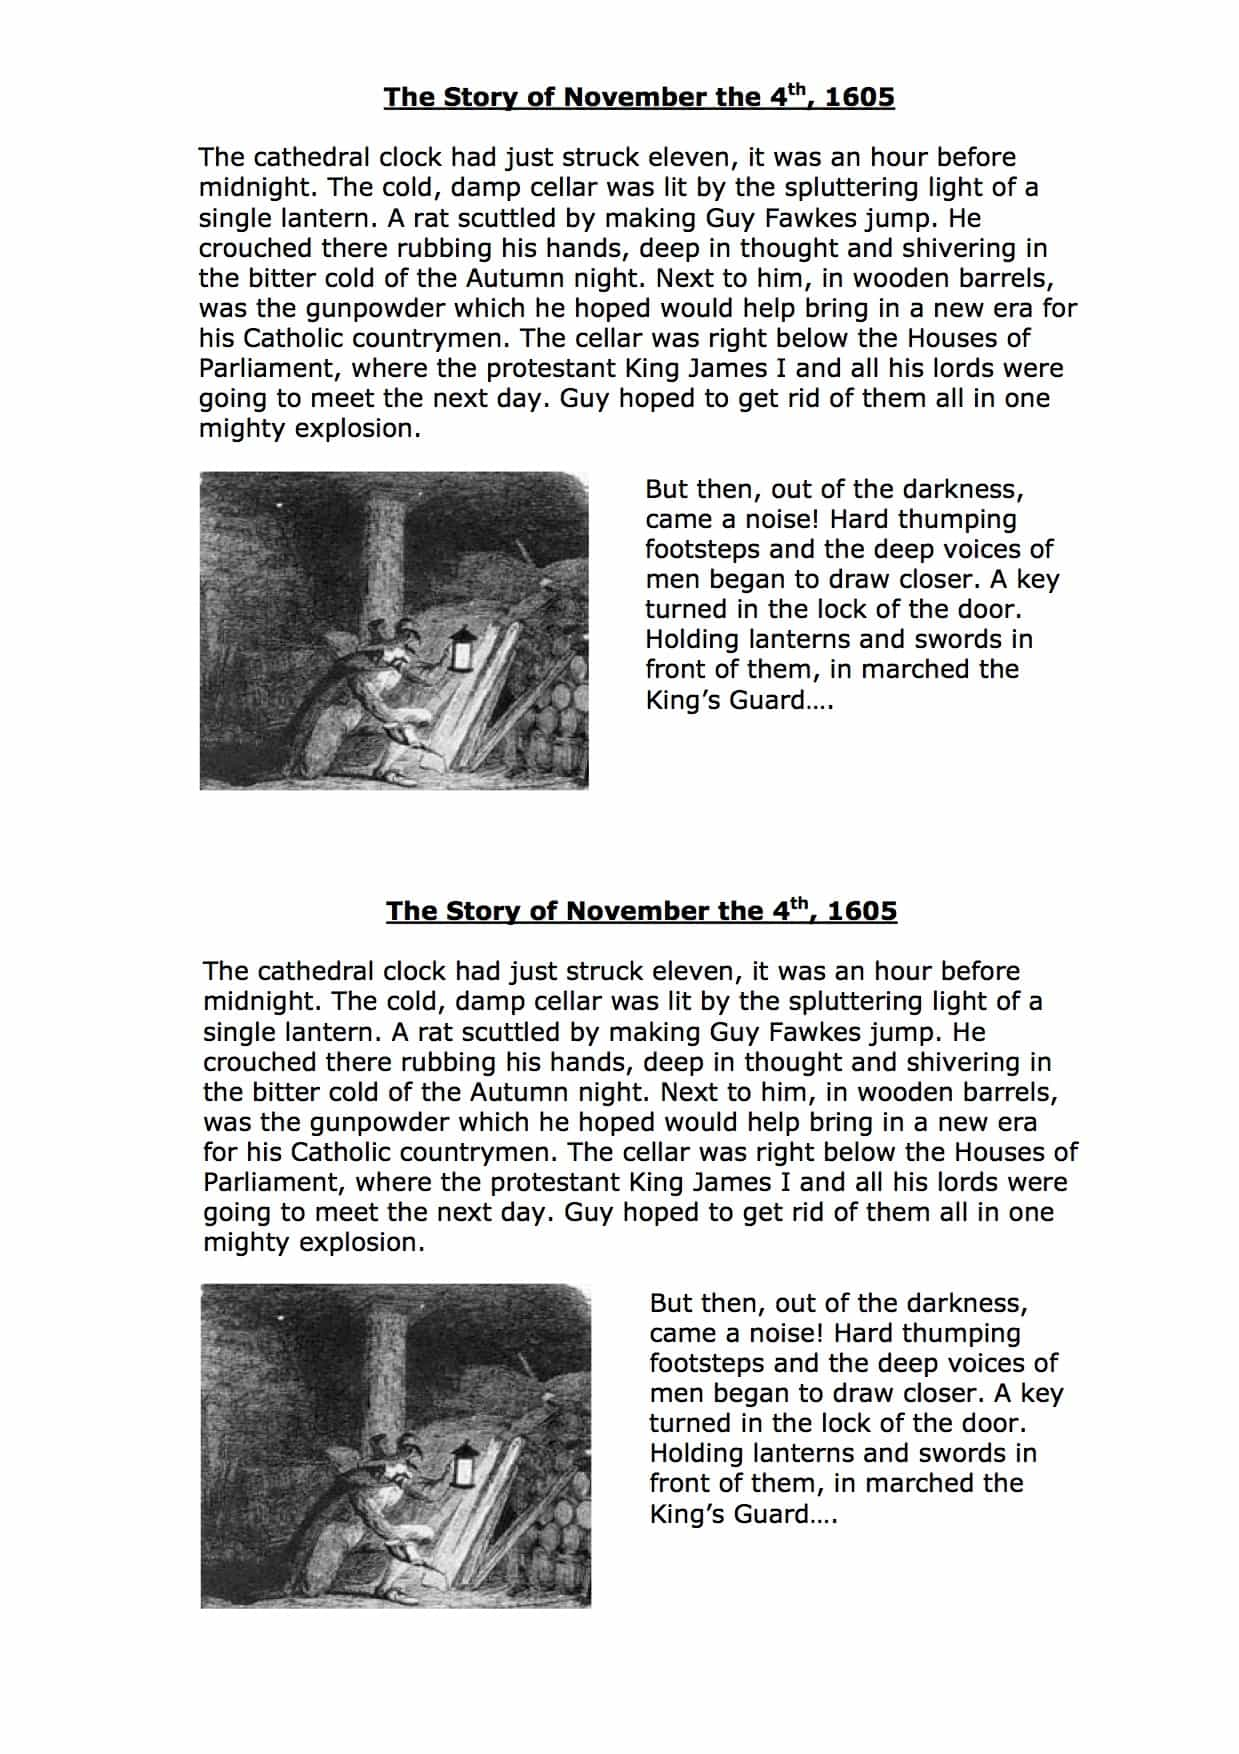 The Story Of Guy Fawkes On November 4th Worksheet